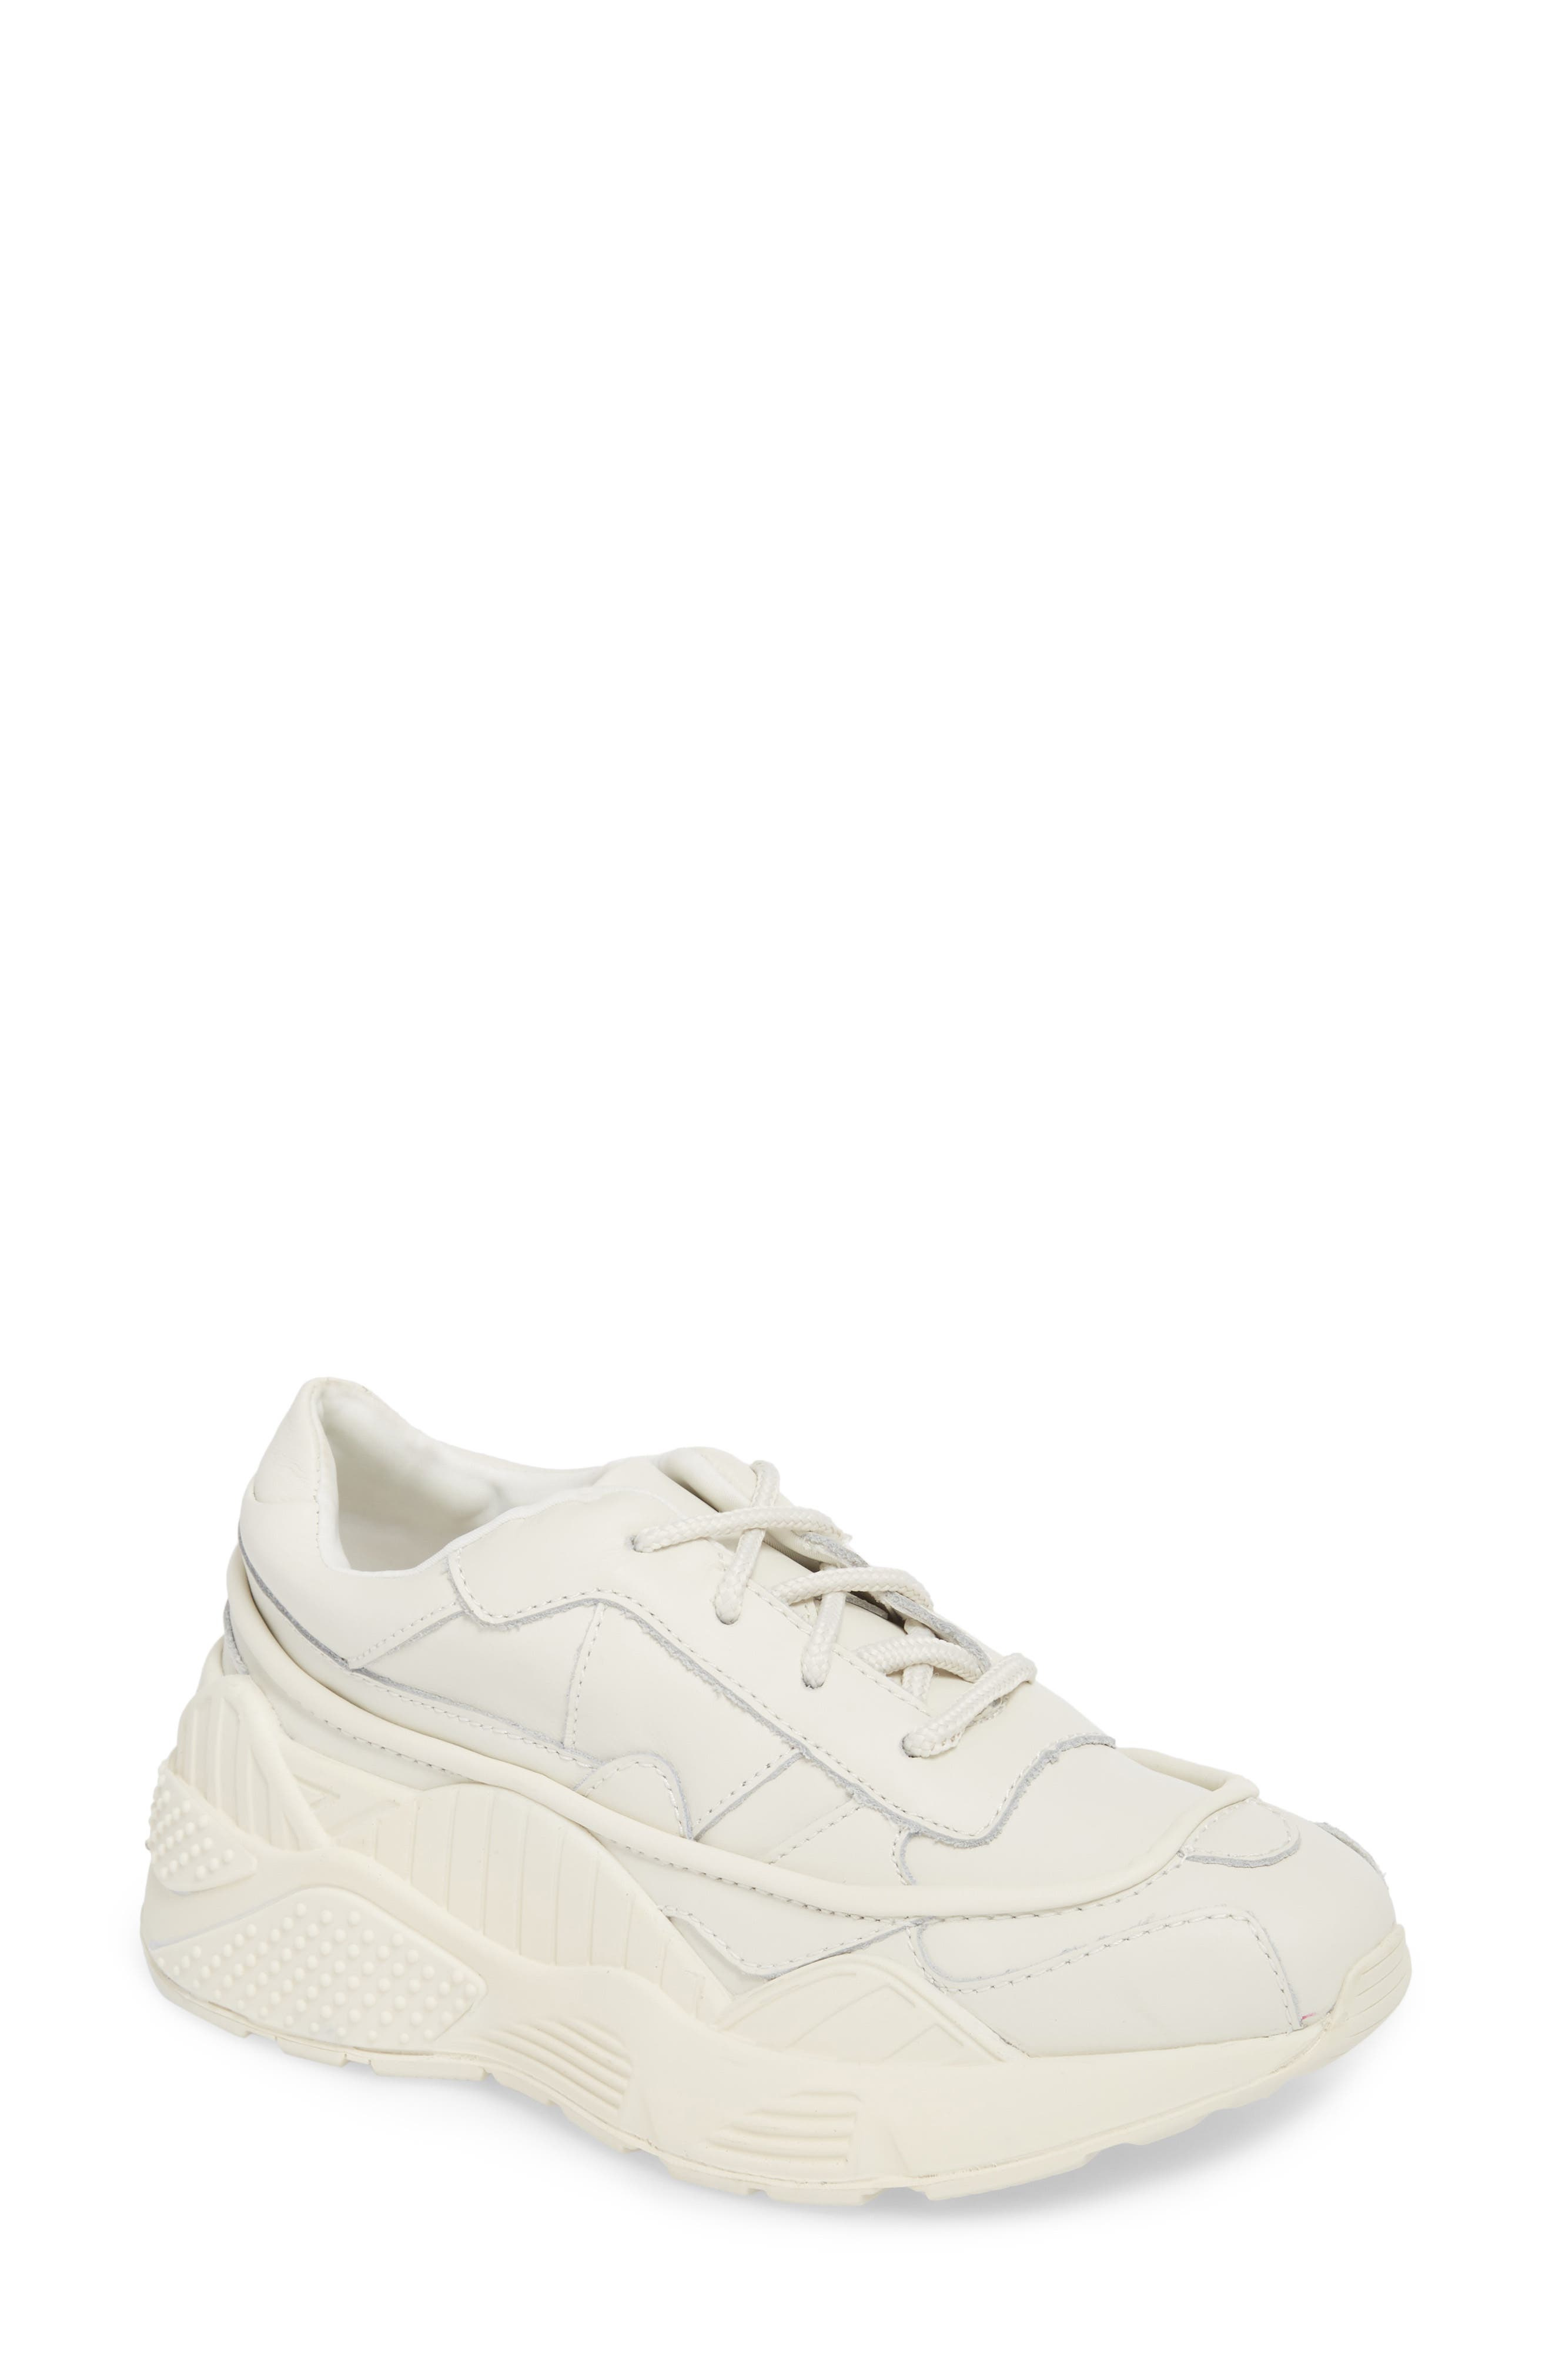 HMDI Platform Sneaker,                             Main thumbnail 1, color,                             WHITE LEATHER